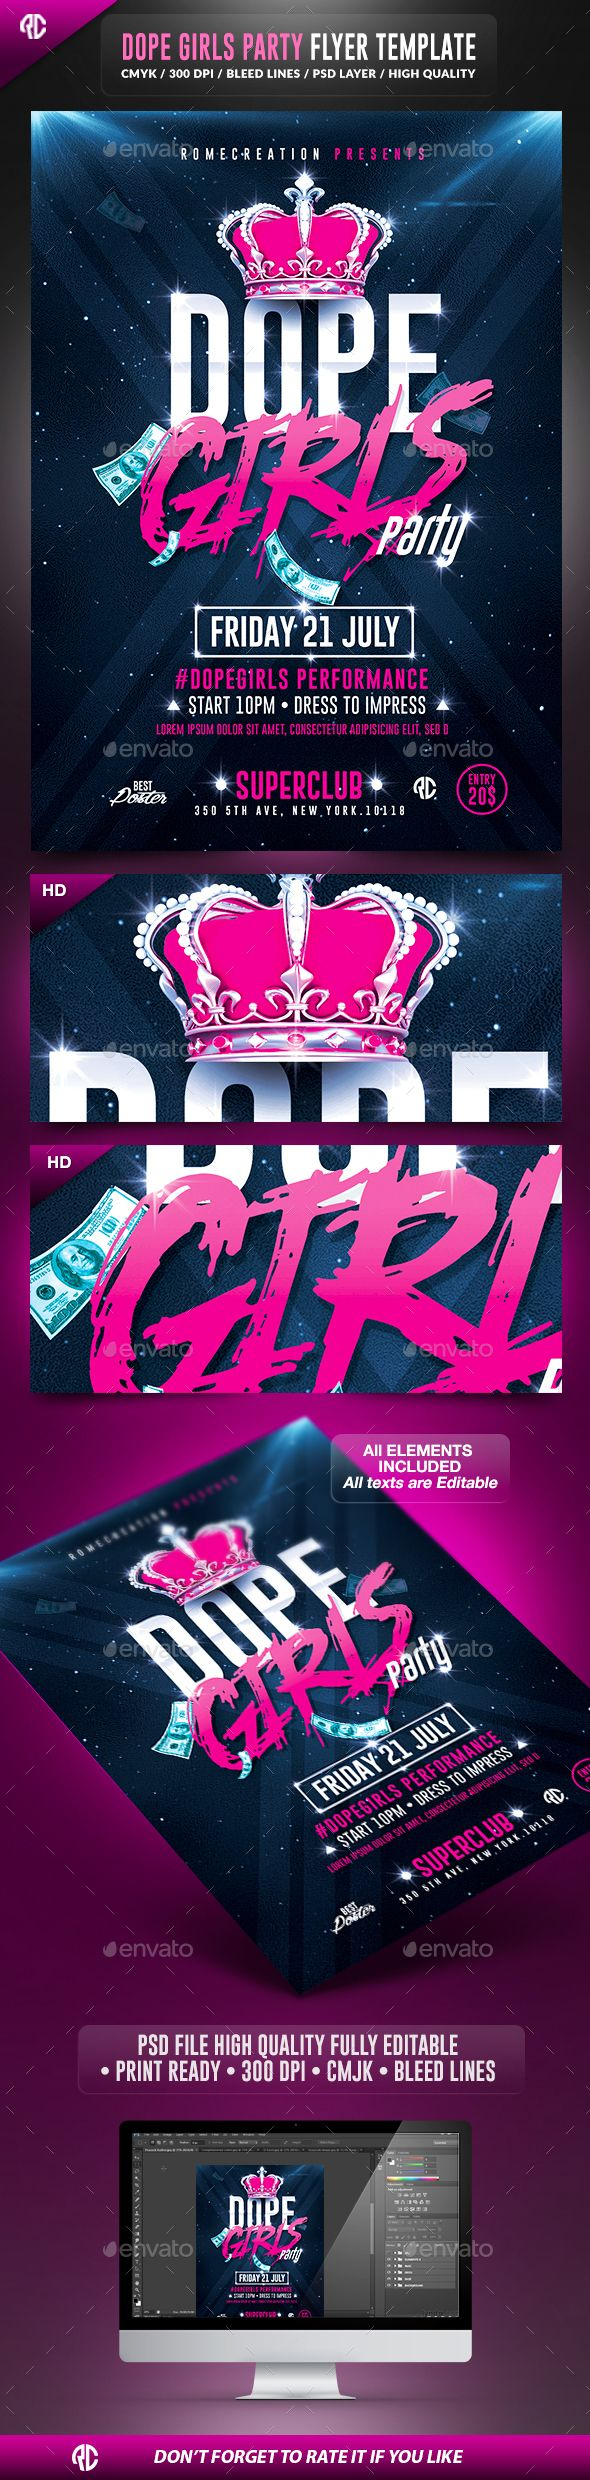 Dope Girls Pink Party Flyer  -  PSD Template • Only available here! ➝ https://graphicriver.net/item/dope-girls-pink-party-psd-flyer-template/13374245?ref=pxcr